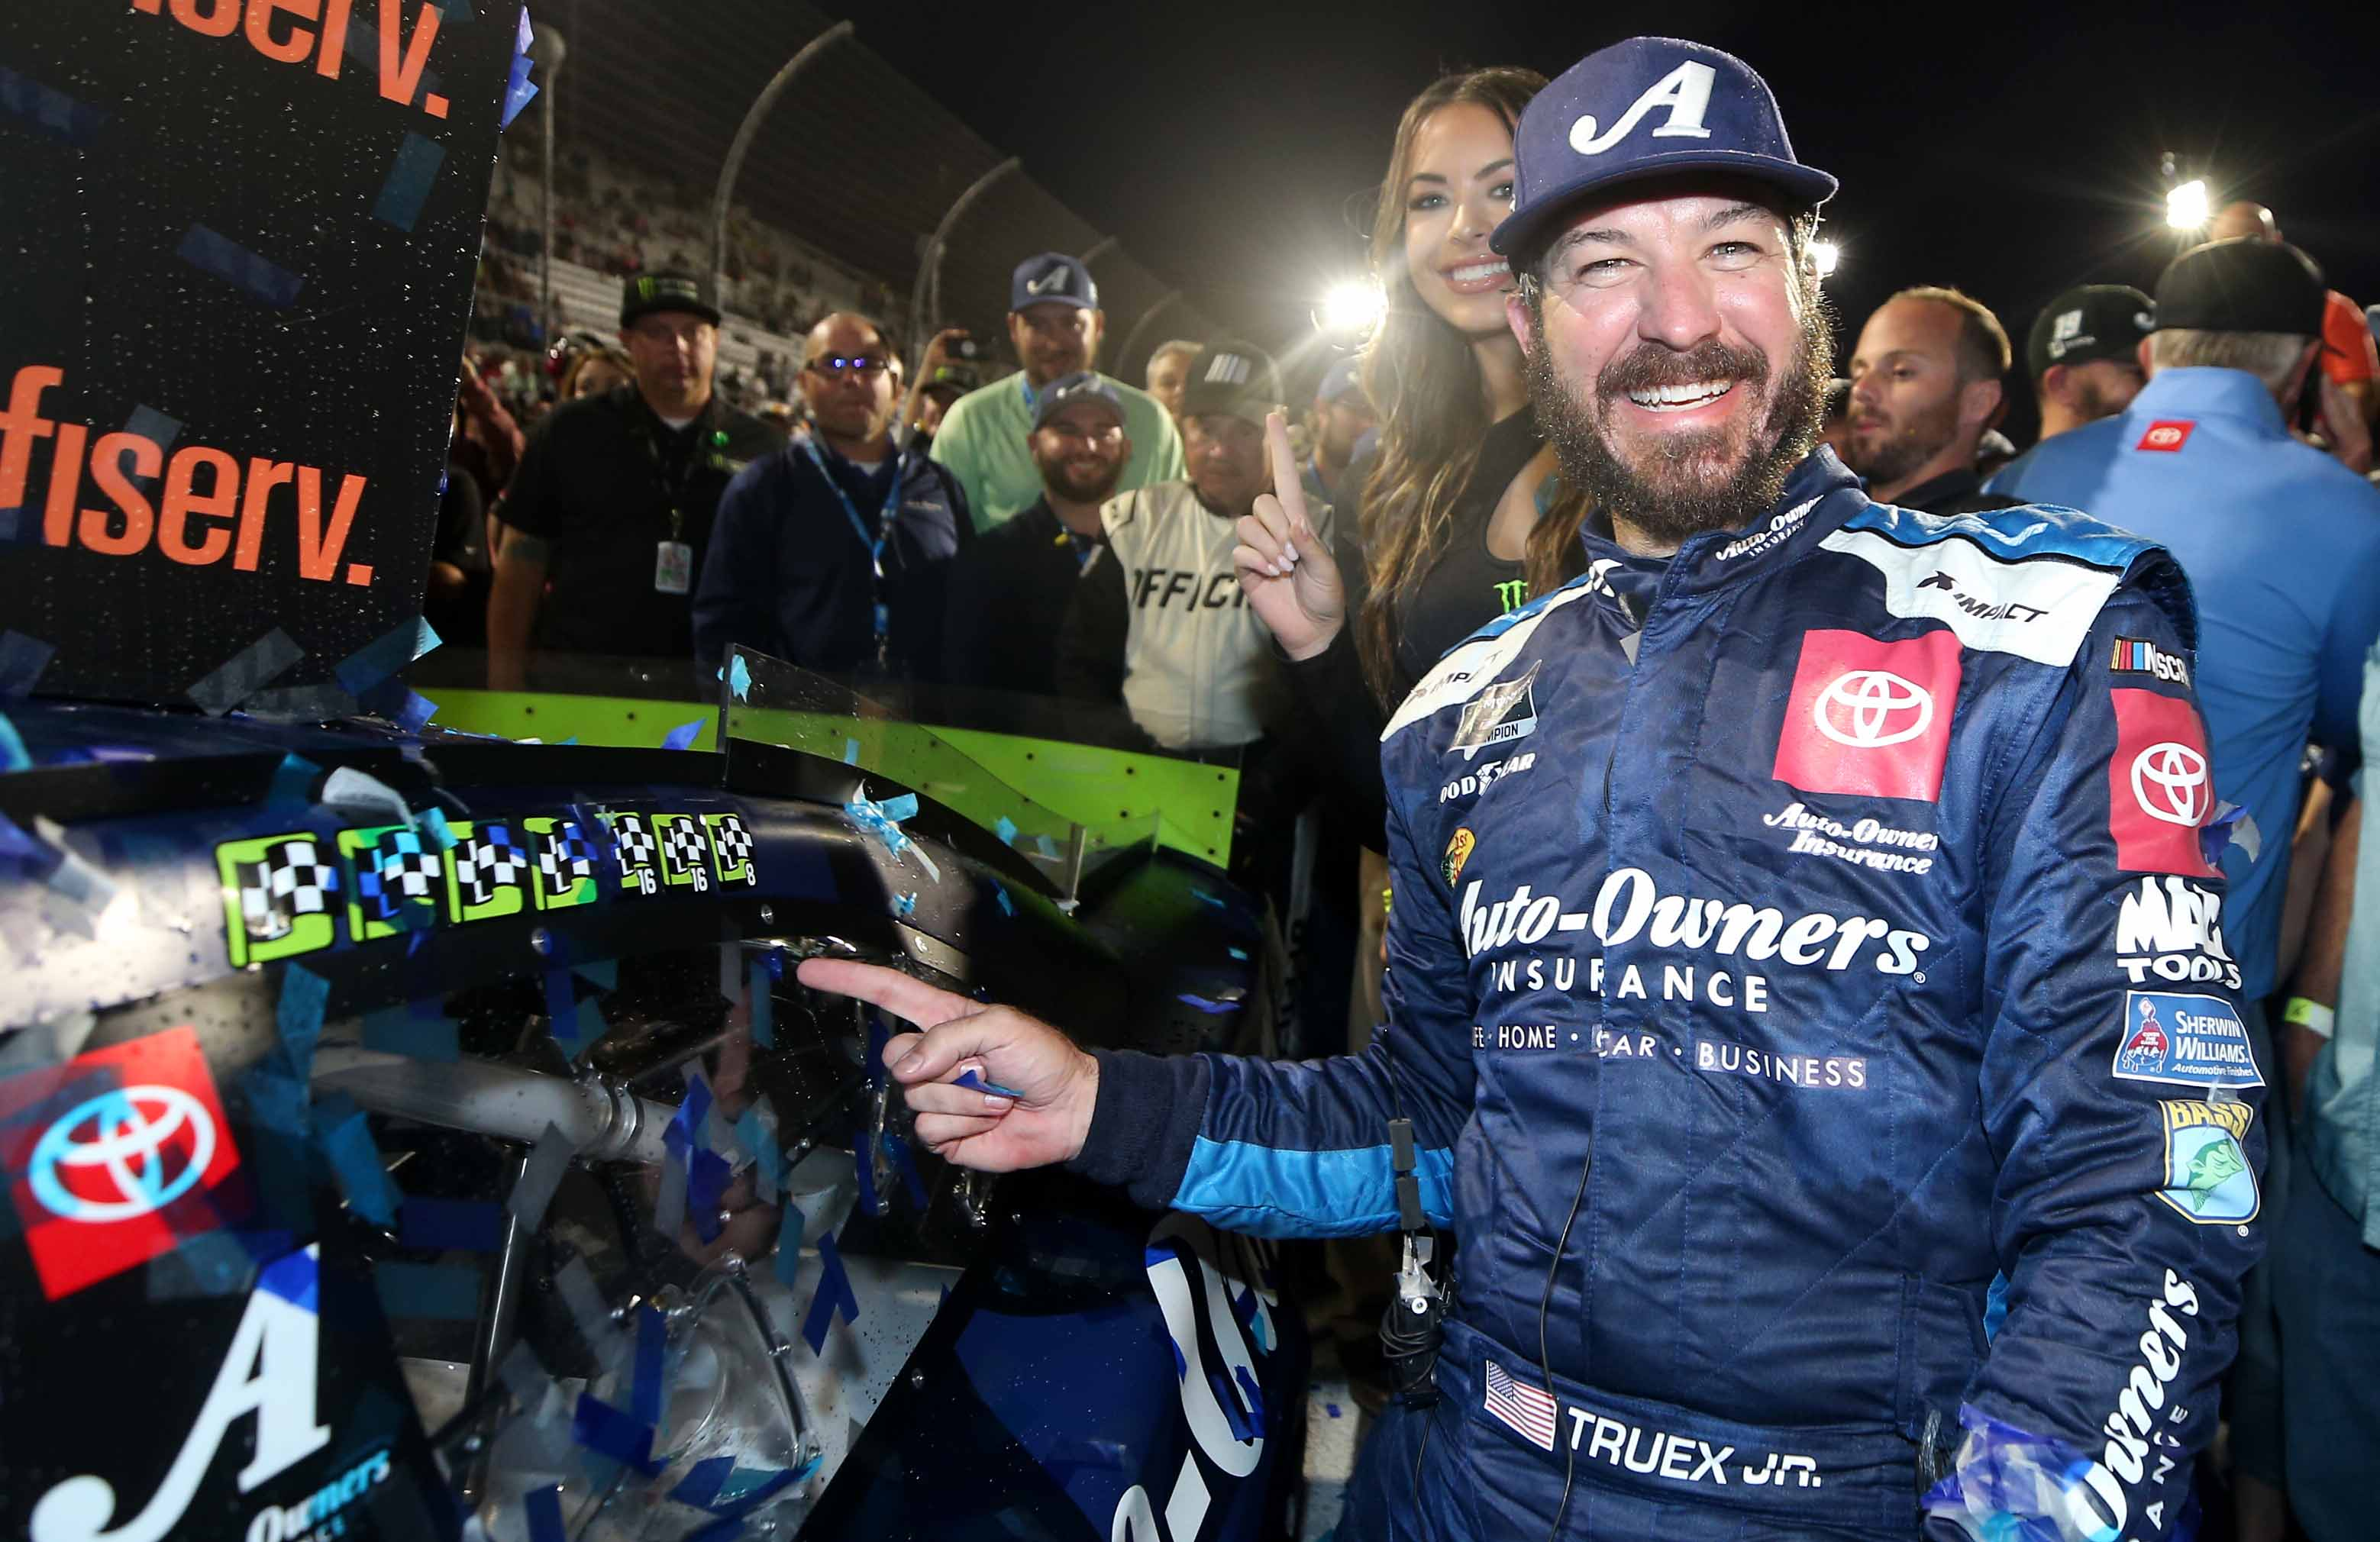 Martin Truex Jr and the Monster Energy Girl in victory lane at Martinsville Speedway